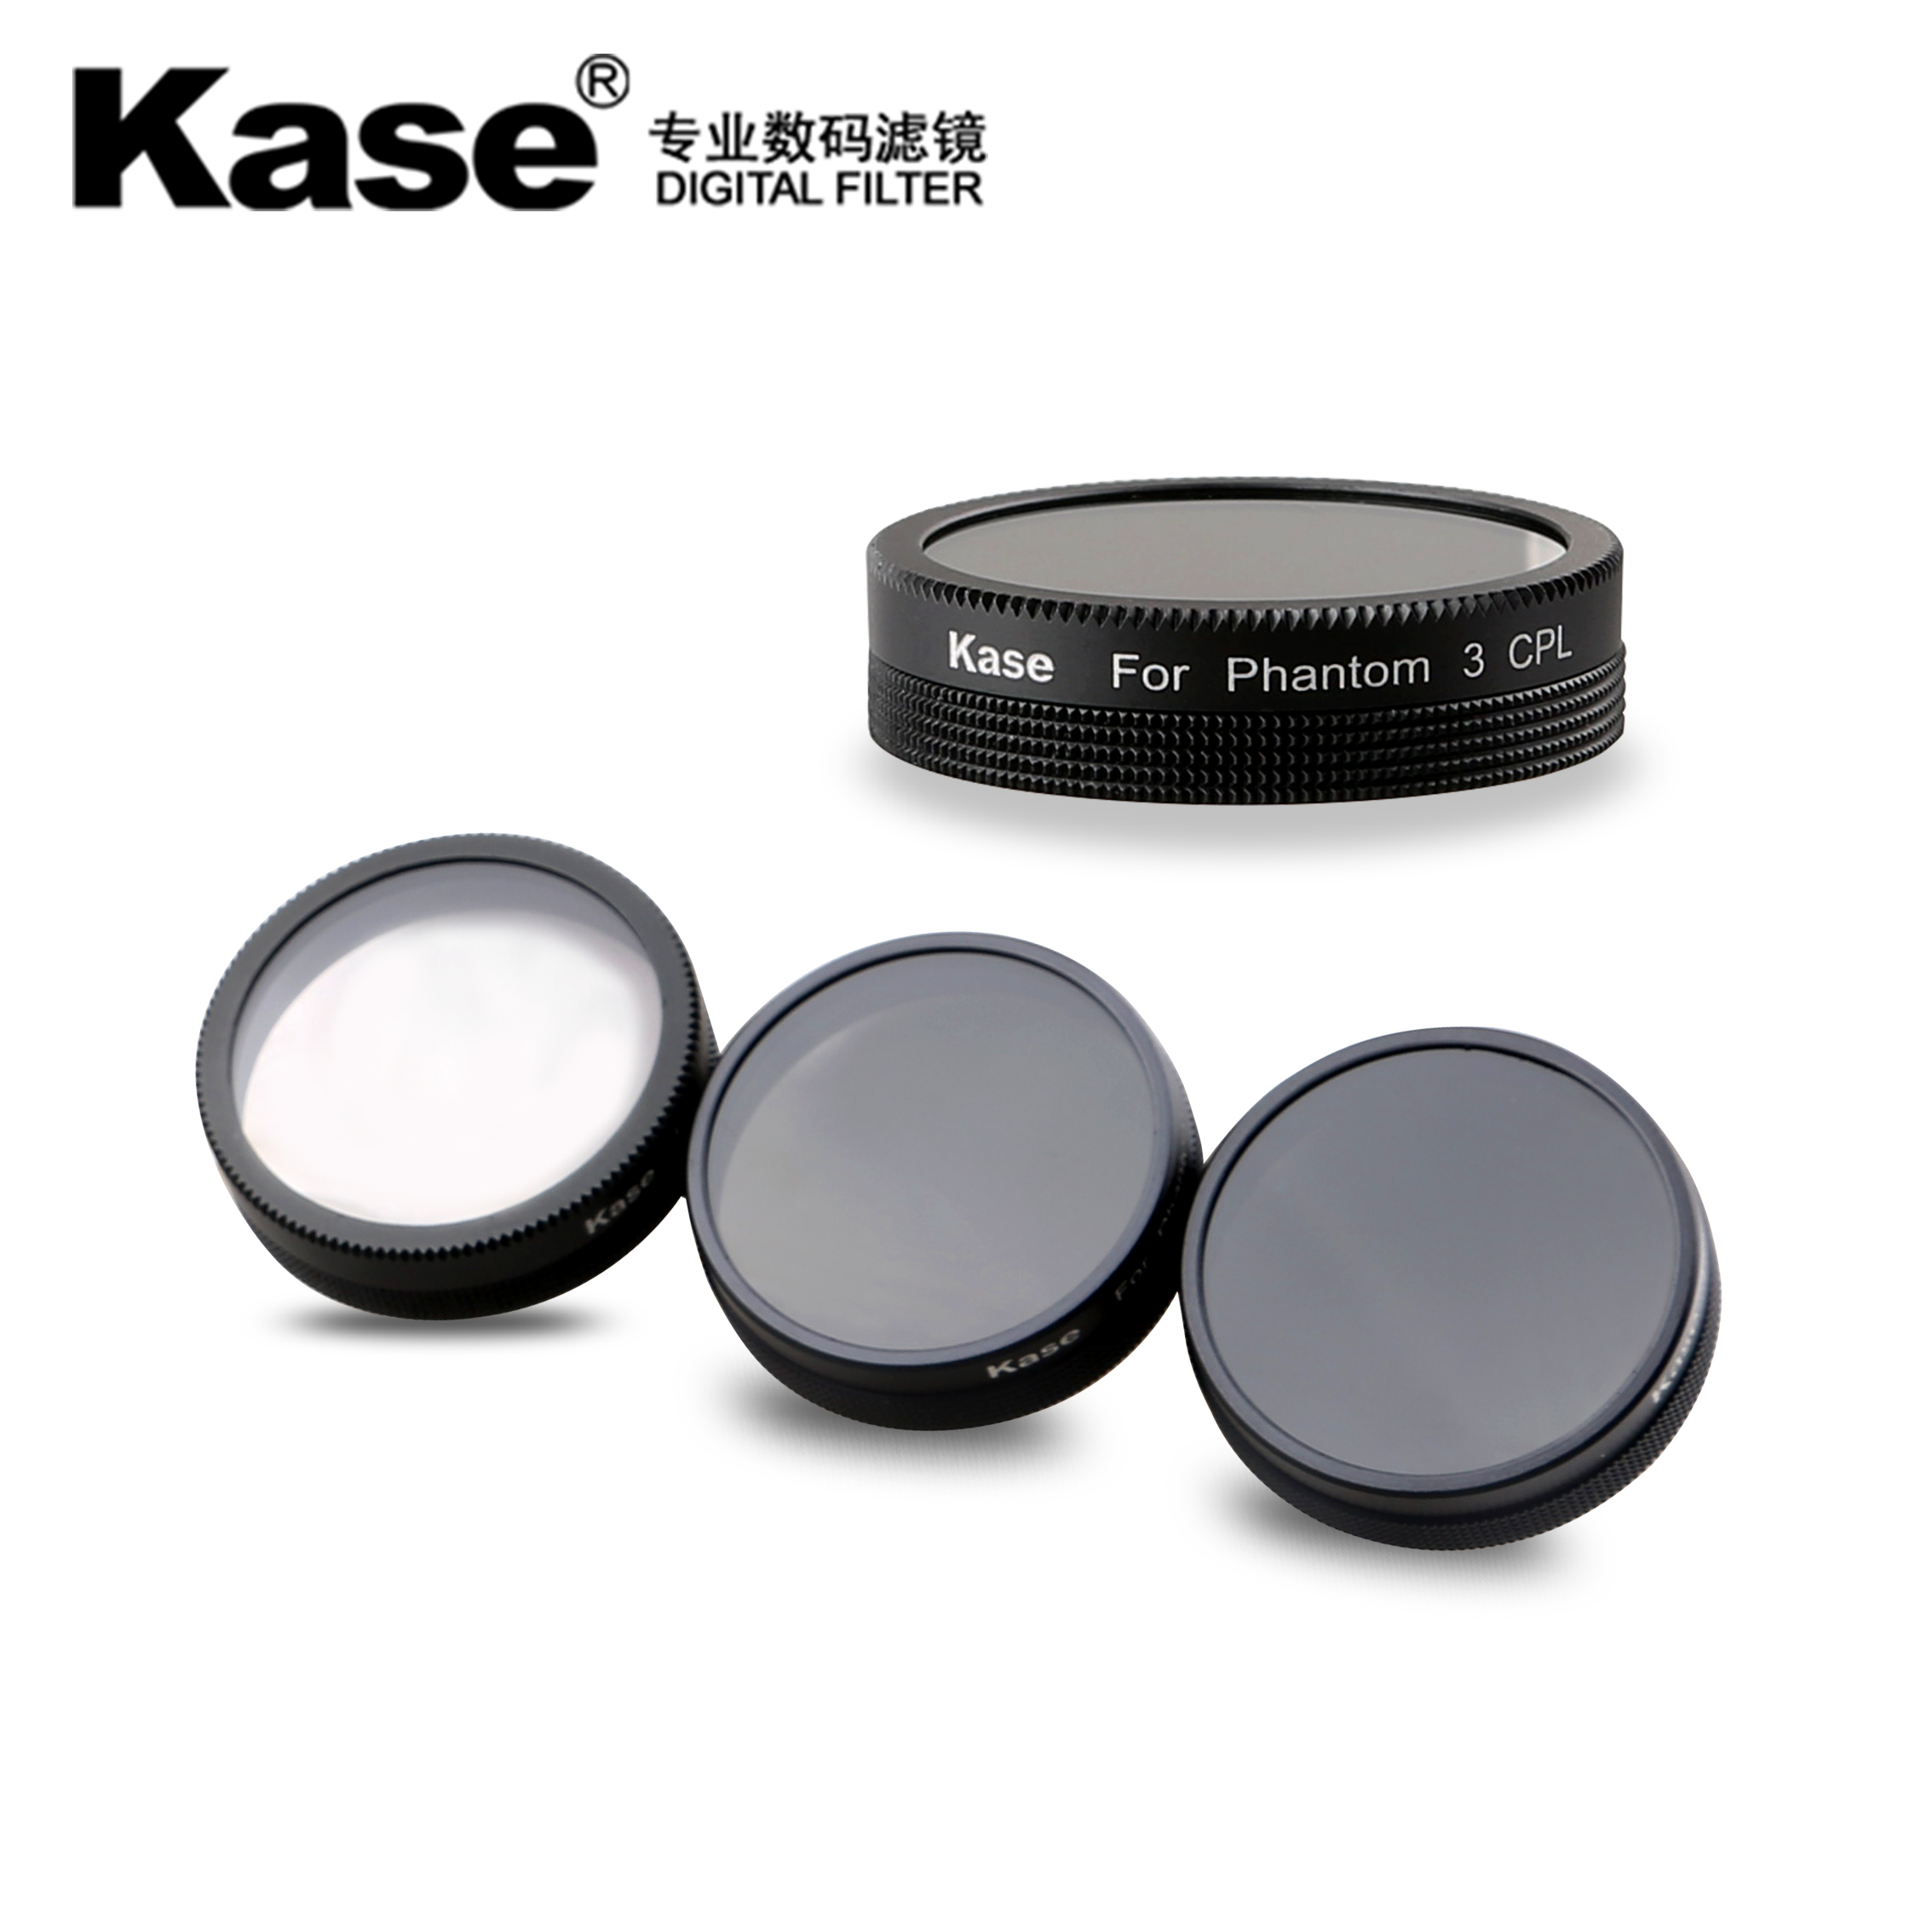 Kase card color filter uav dajiang elf 3 backgroundphantom 4 zen x_3 gradient lens by light microscopy